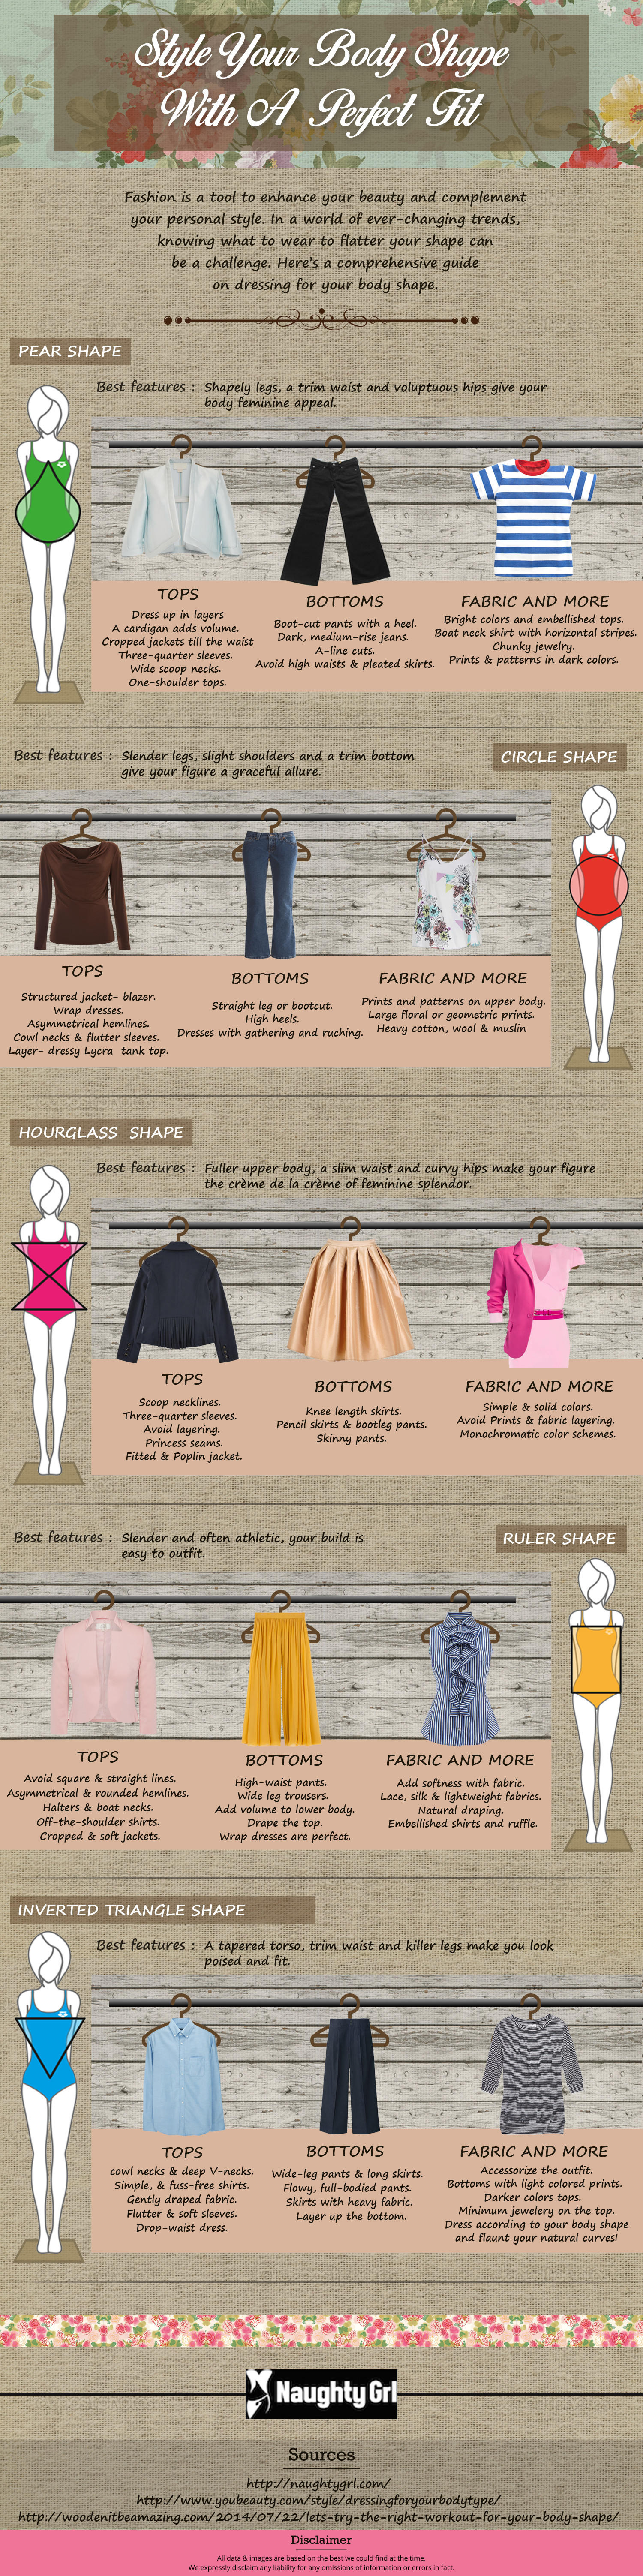 The Style Guide For Body Shapes Infographic